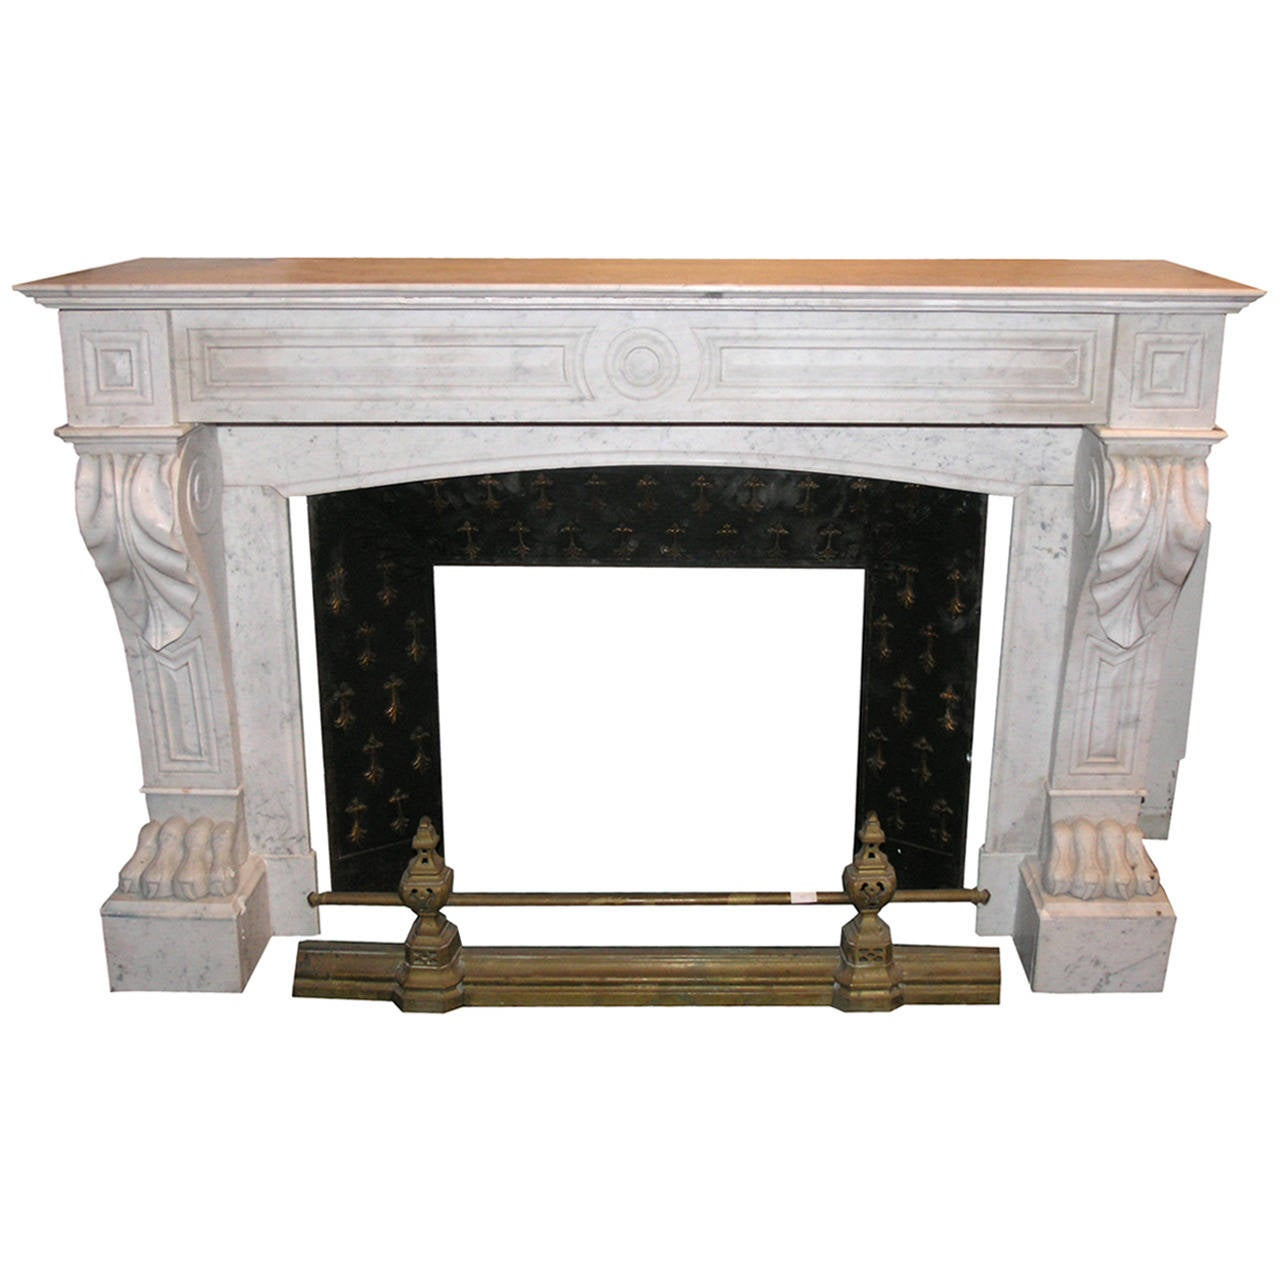 18th century antique carrara marble mantel for sale at 1stdibs for Marble mantels for sale